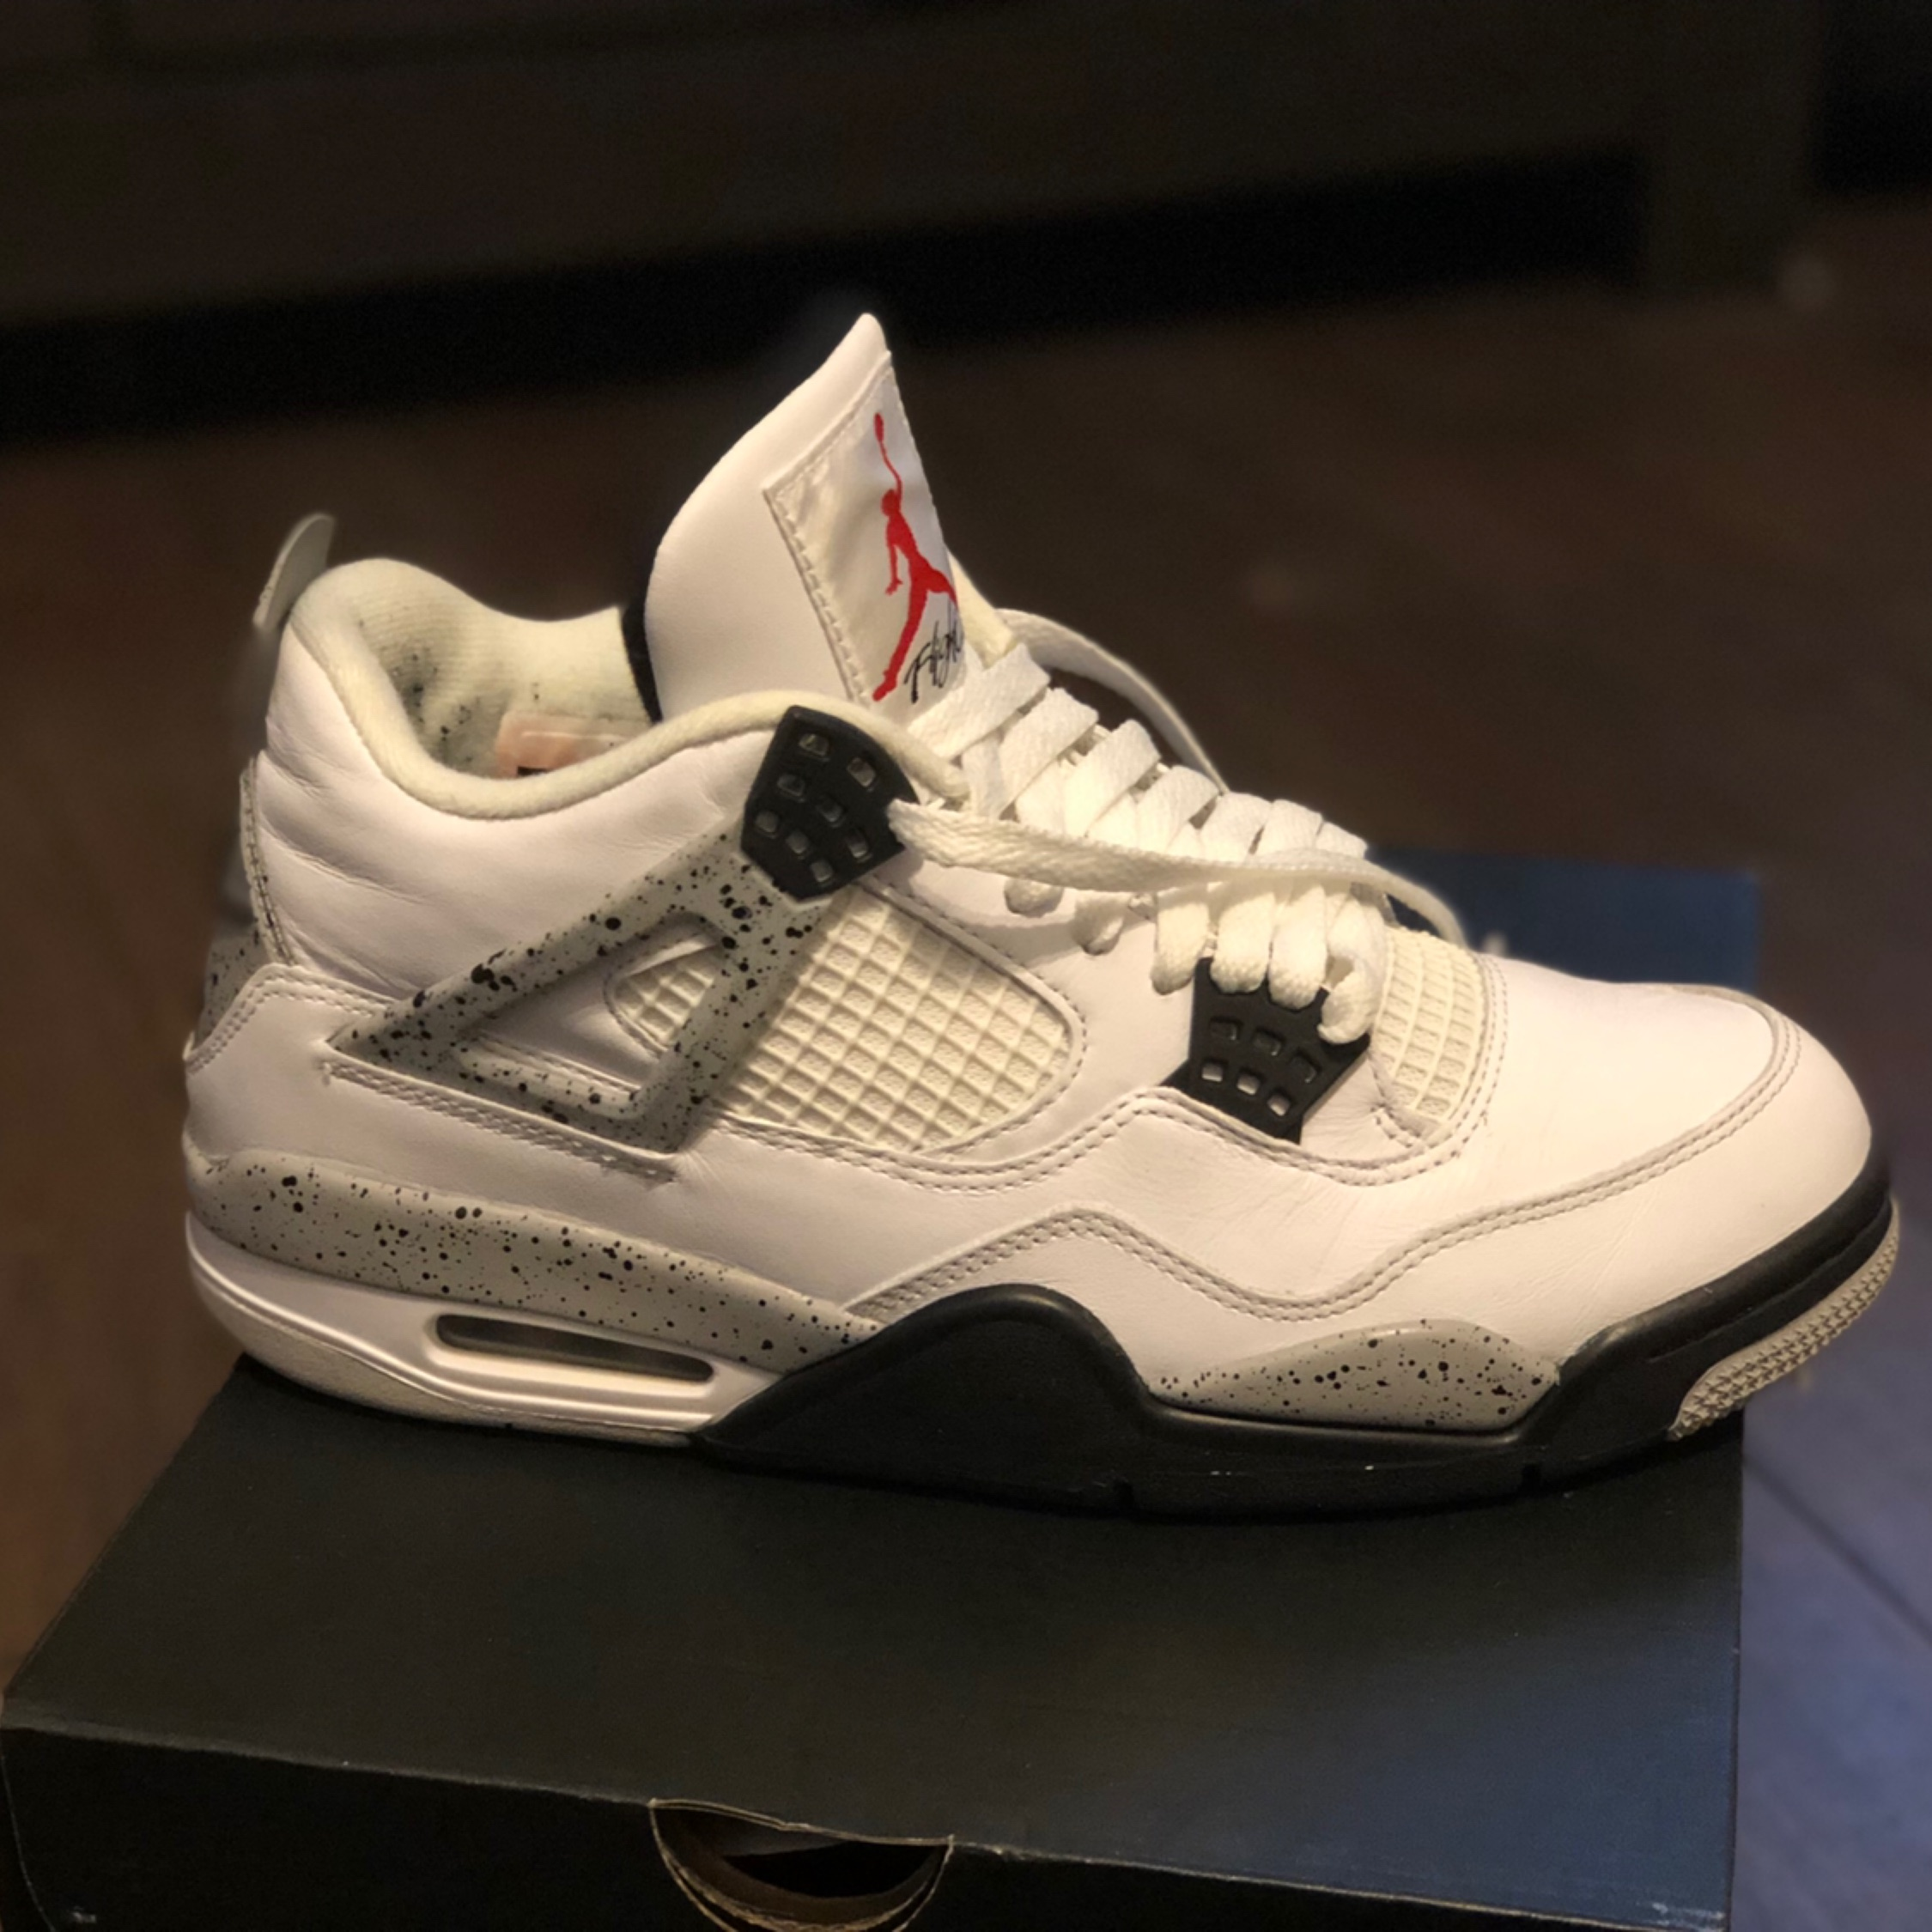 reputable site 82c66 c7ec1 Air Jordan Retro 4 Og White Cement